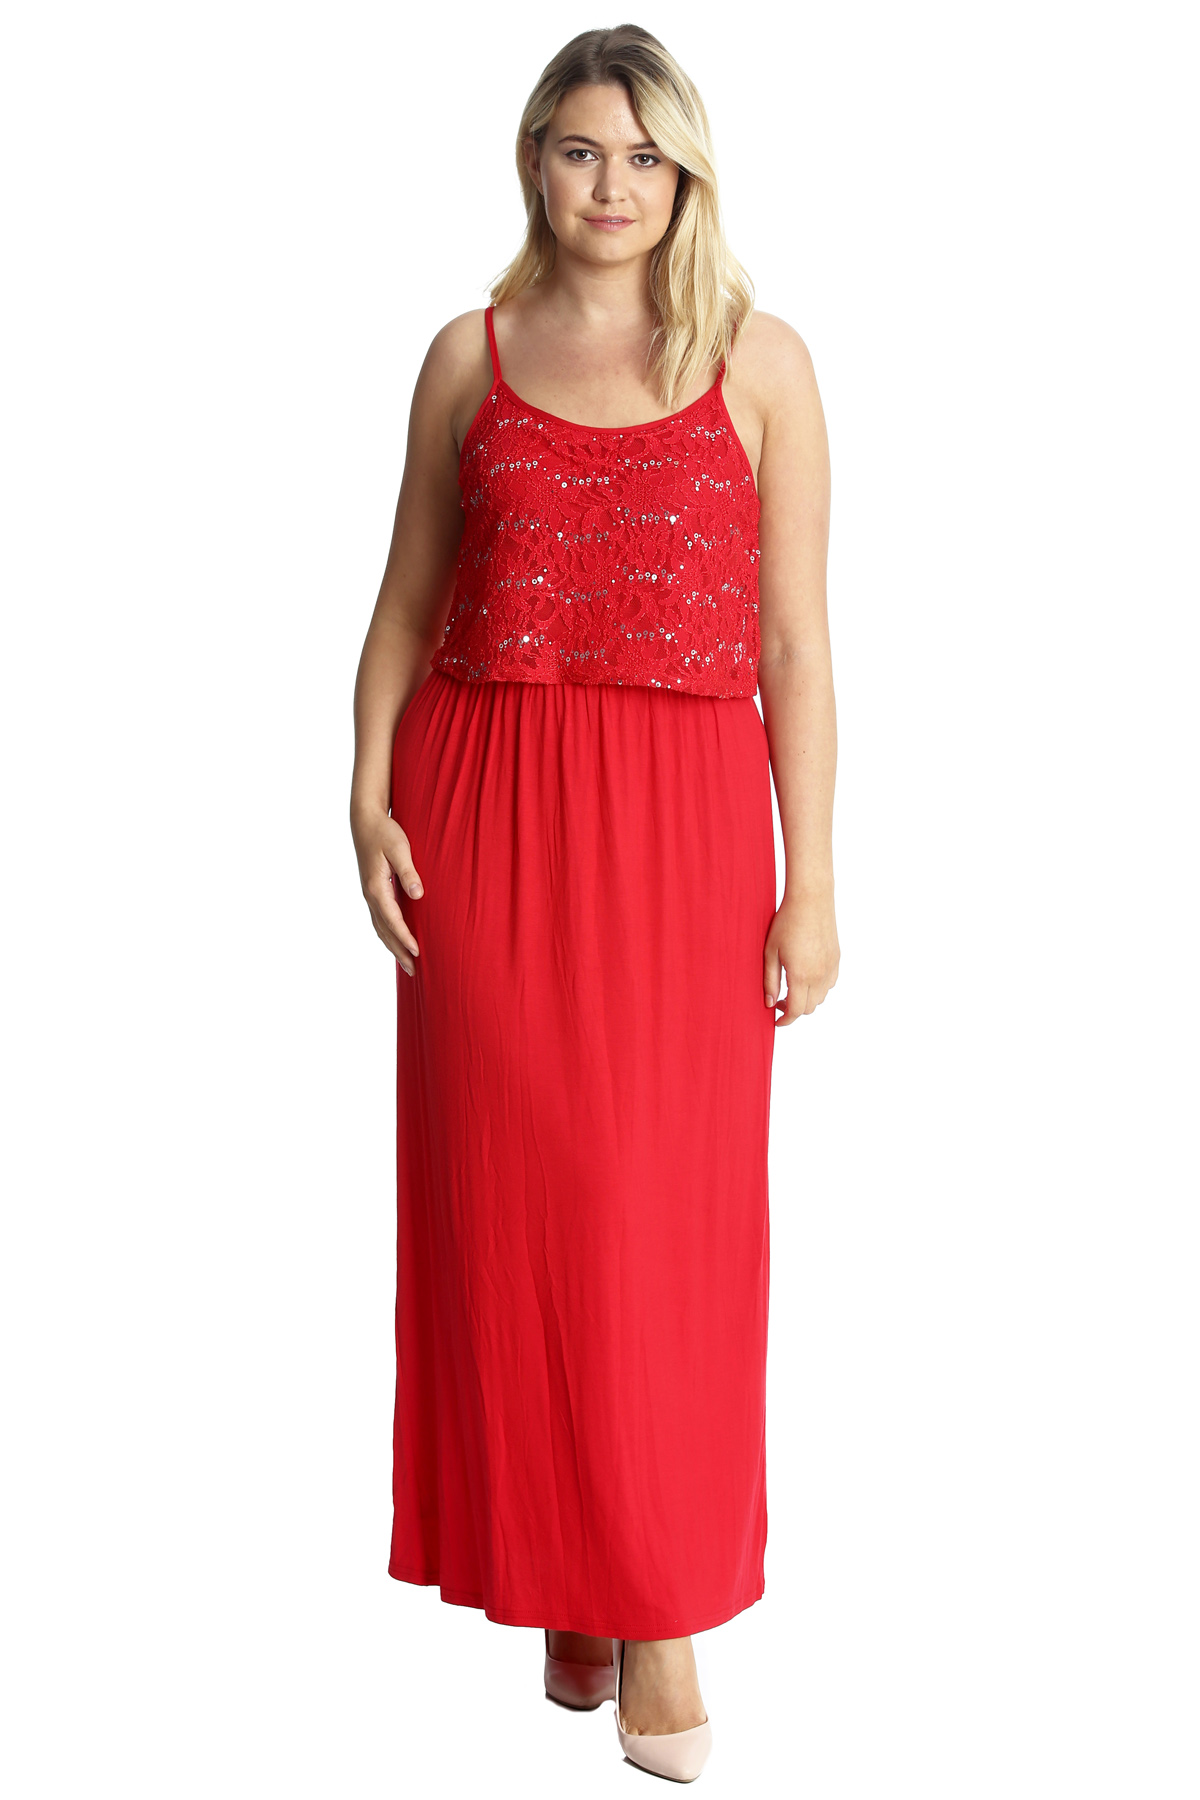 Details about New Womens Plus Size Maxi Dress Ladies Sequin Floral Lace  Tank Top Sleeveless